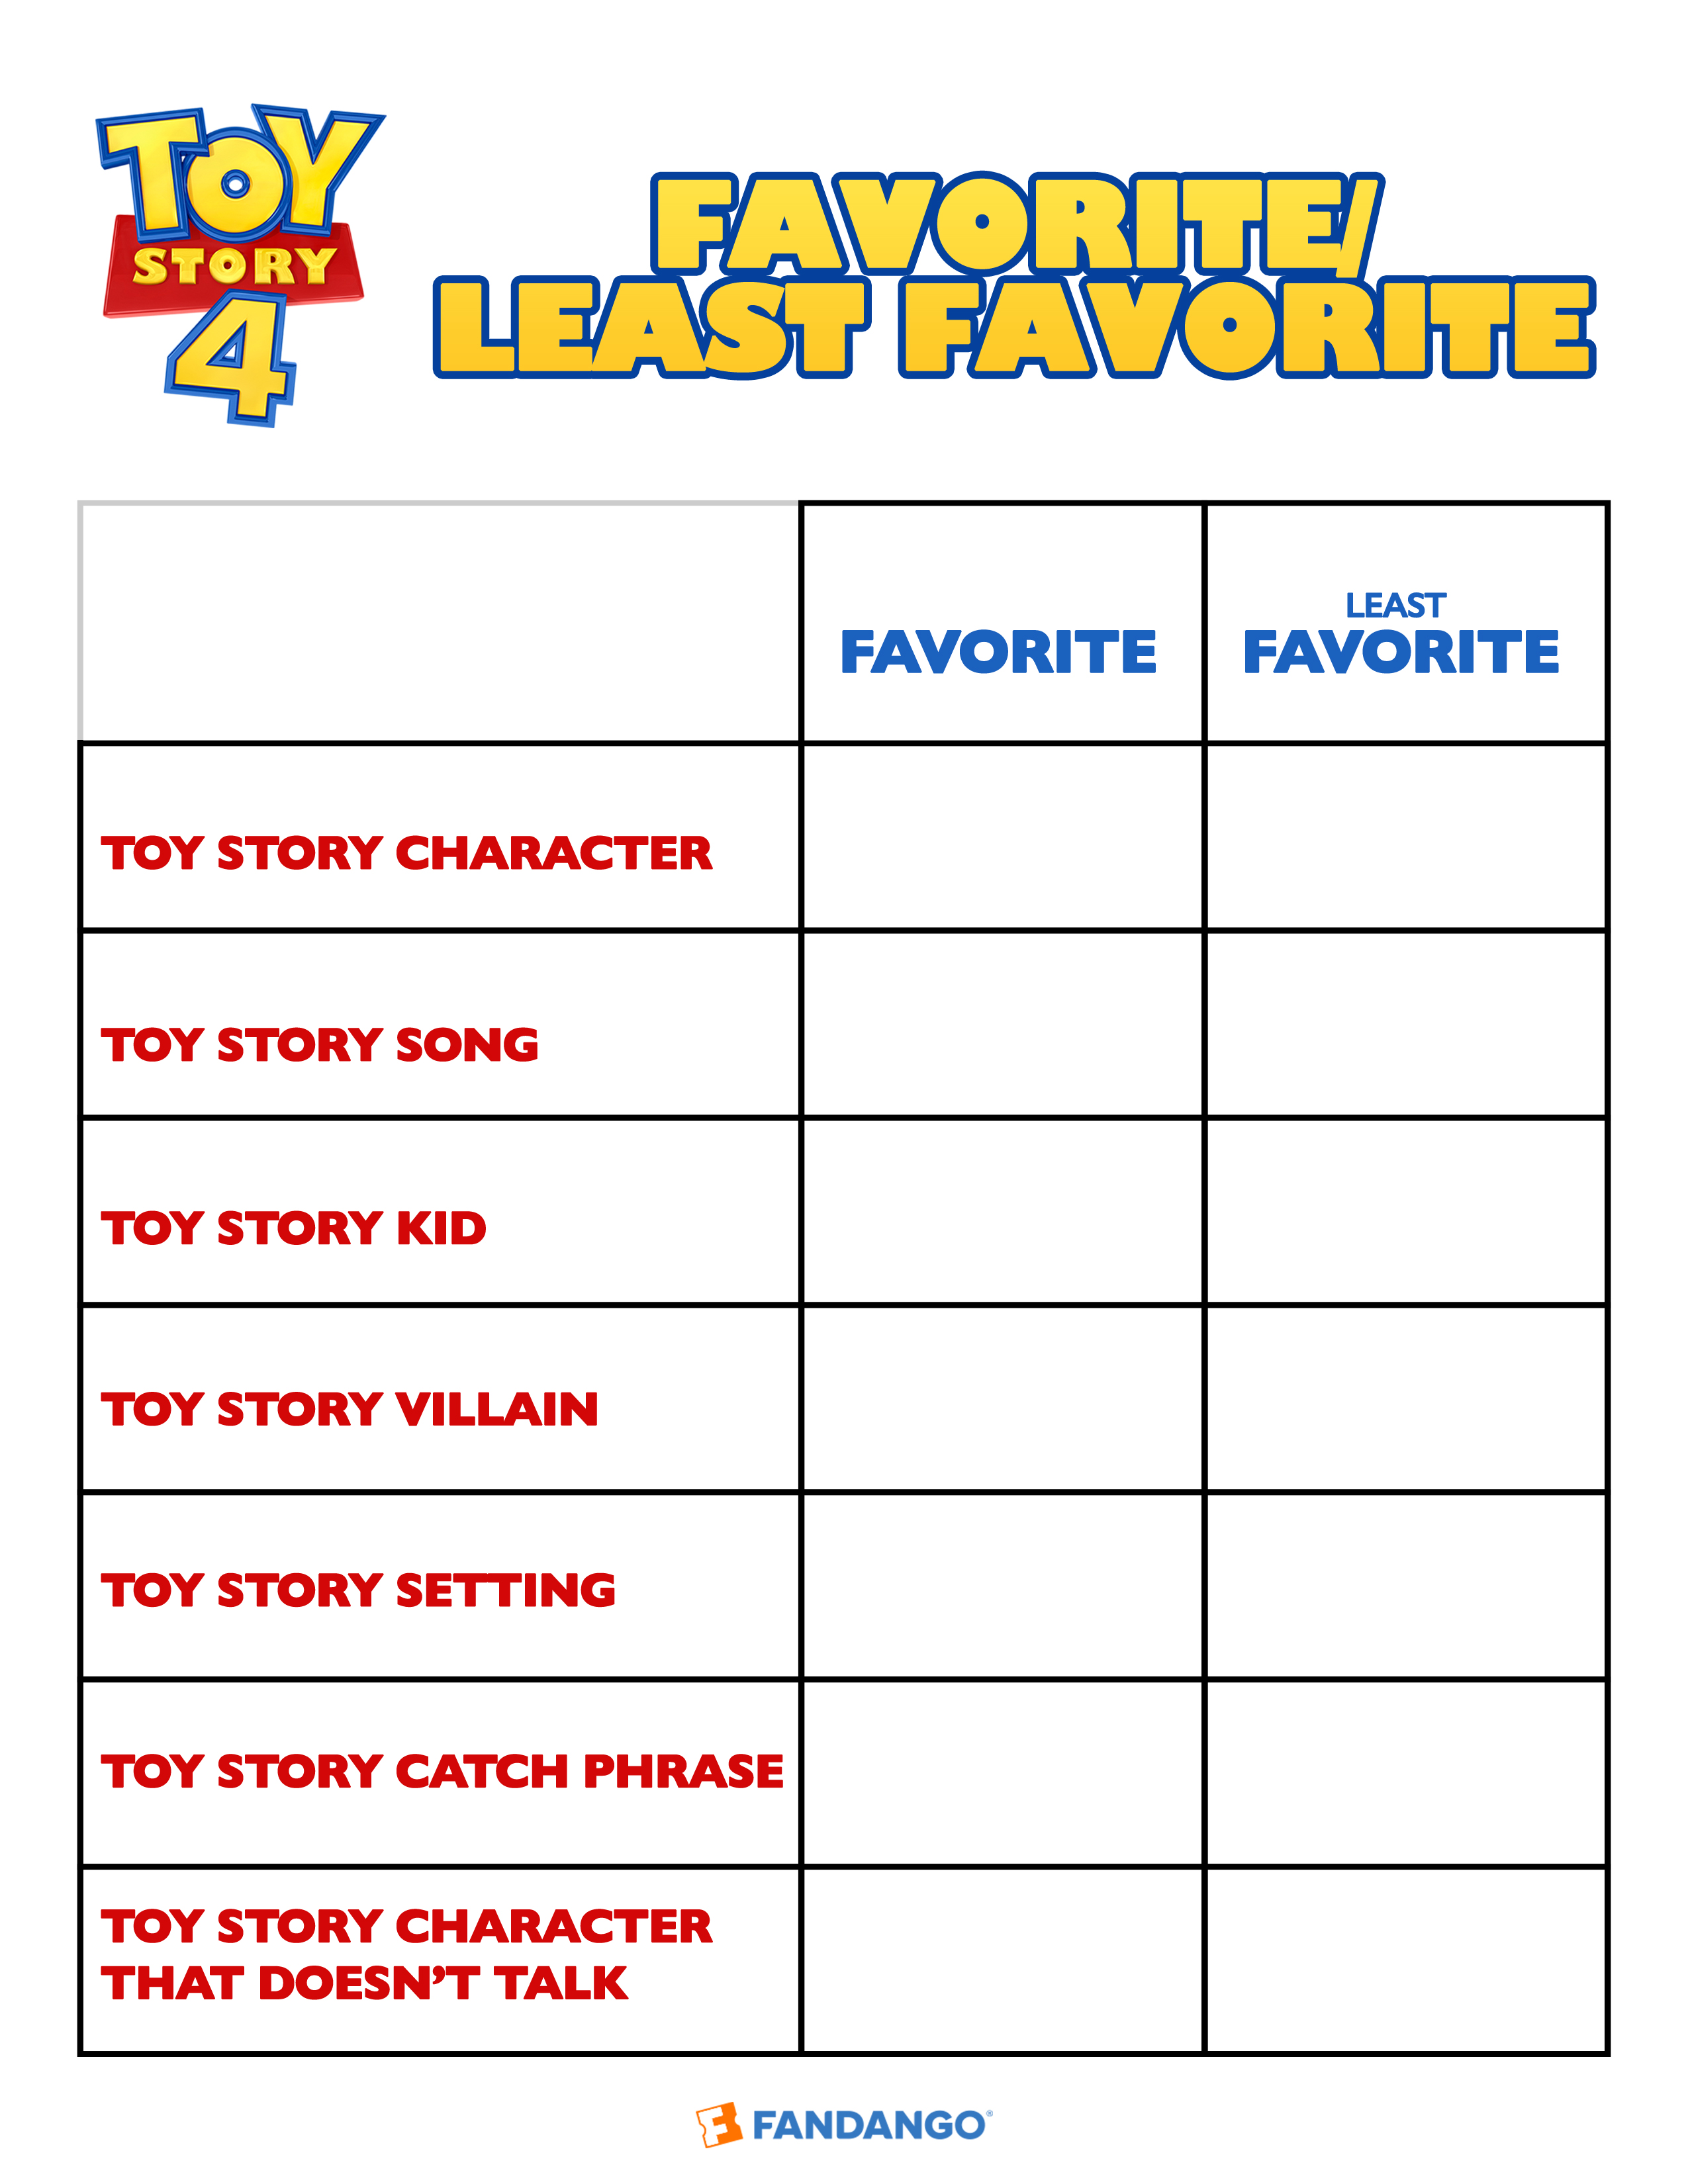 Get Creative With Toy Story 4 Activity Sheets